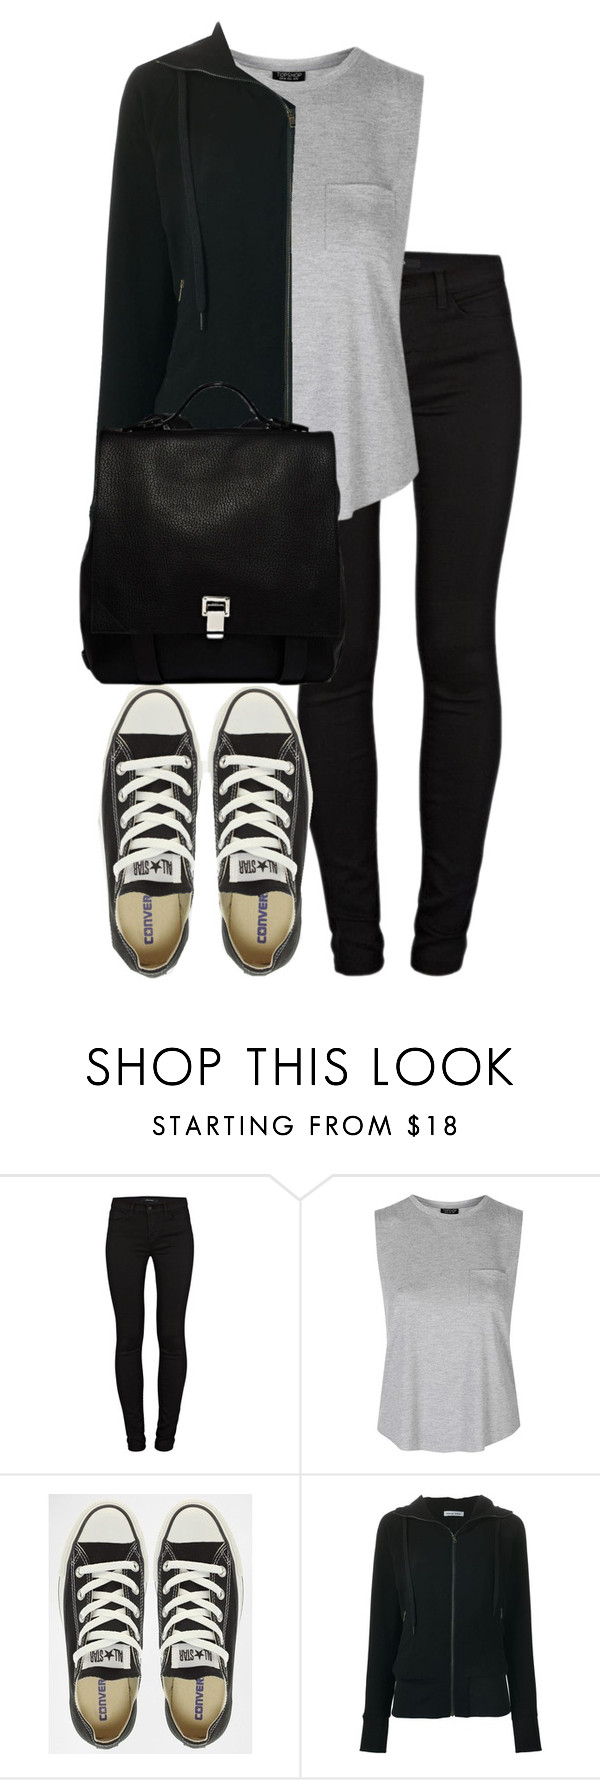 """""""Untitled #2653"""" by elenaday on Polyvore featuring J Brand, Topshop, Converse, Tomas Maier, Proenza Schouler, women's clothing, women, female, woman and misses"""